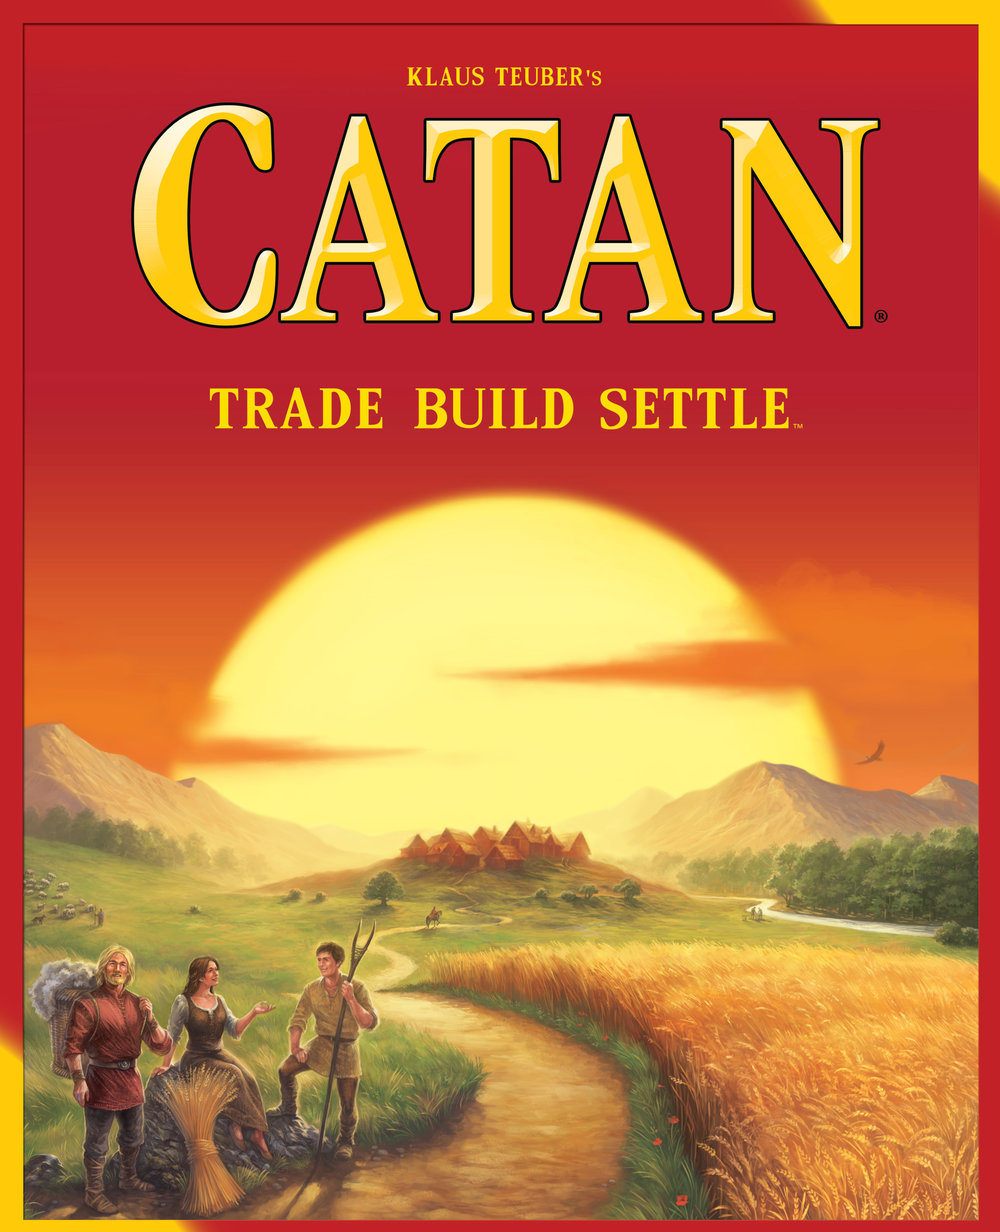 Catan - INTRODUCES:Resource ManagmentSettlers of Catan is indeed a classic and allowed the genre of Euro games to grow exponentially into what it is today. Catan is a perfect game to introduce folks new to board gaming and gives a diverse taste of different game mechanics.Not only is there strategic thinking that goes into playing this game, there is also strategic interactions (mind games if you will) that can play a vital part in contributing to a victory...and may contribute to a quarrel or two after the game has ended.It's a must have game for your collection as it is a very easy Euro Game to teach others who are new to the board game hobby.